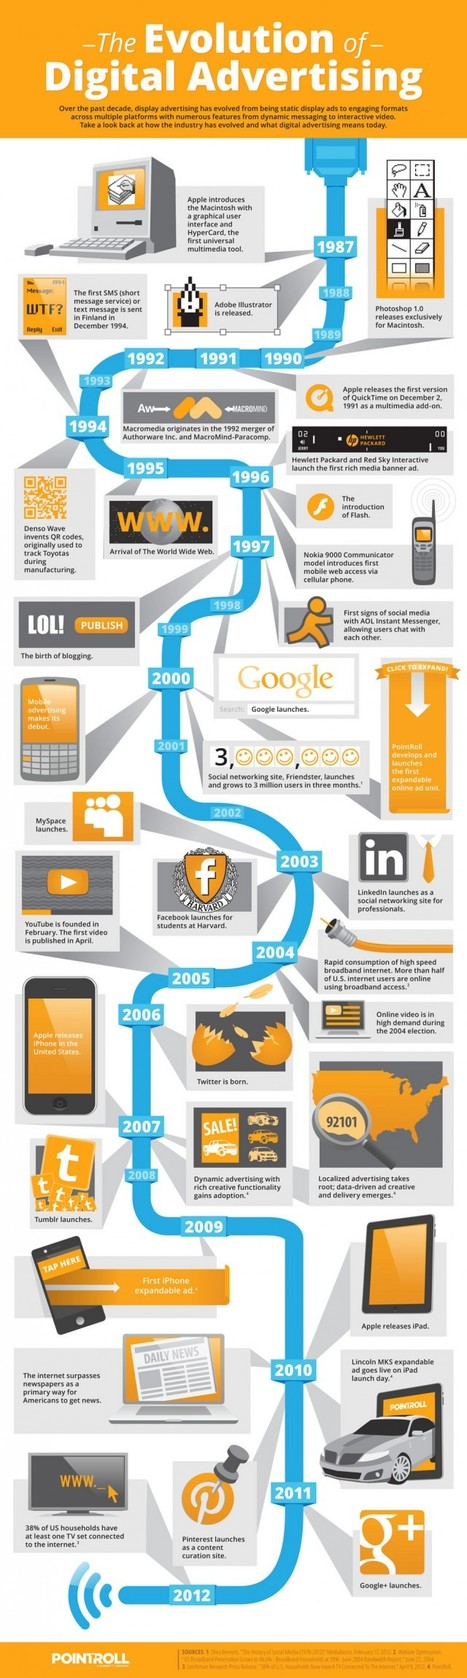 Infographic and Presentation: The Evolution of Digital Advertising | Marketing Technology Blog | Marketing & Advertising | Scoop.it